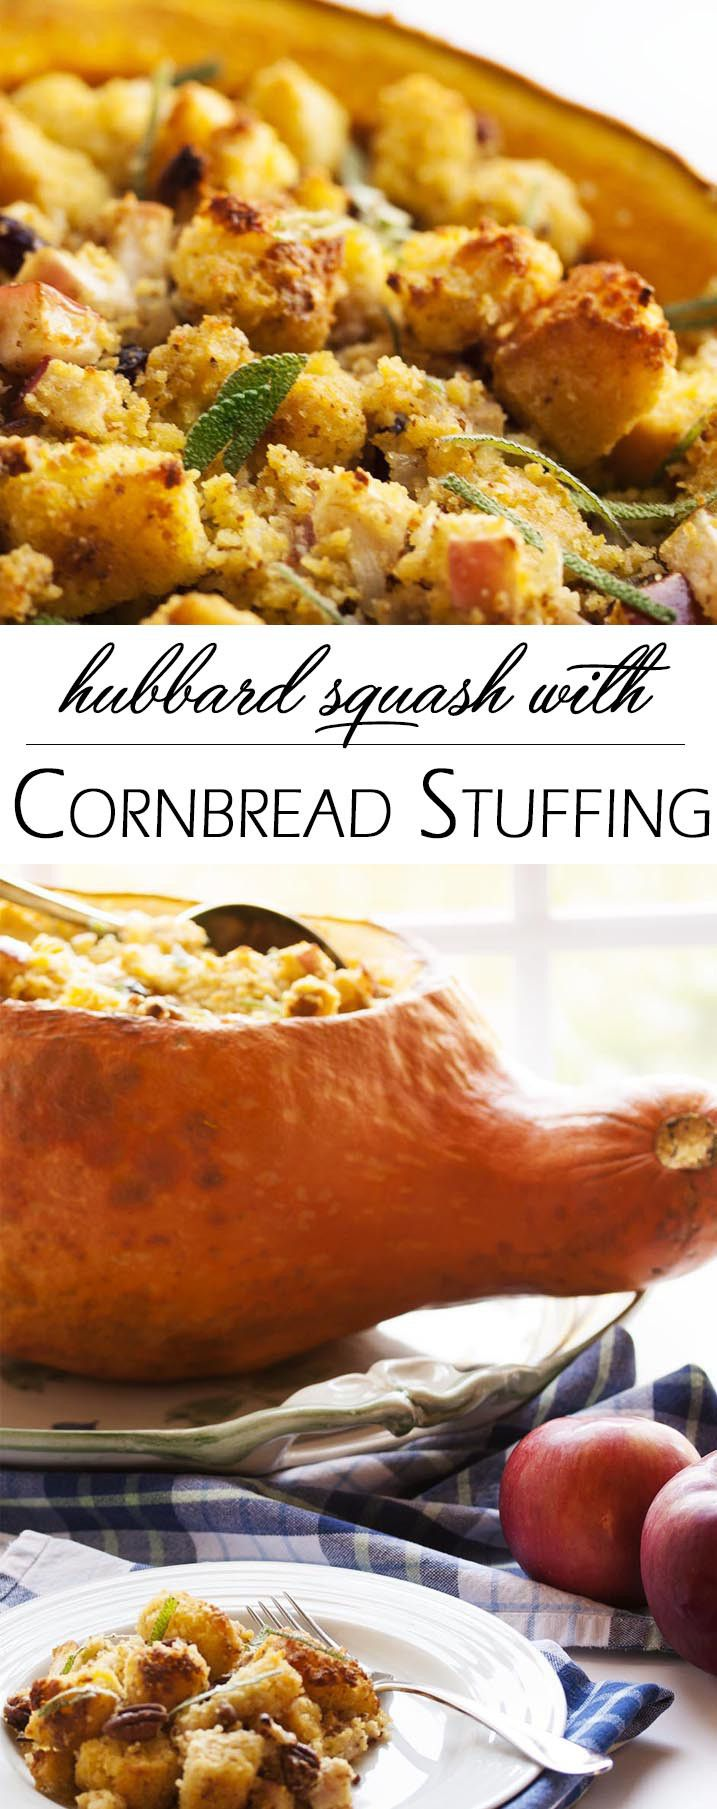 Hubbard Squash with Cornbread Stuffing - Looking for an impressive vegetarian centerpiece or side dish for your Thanksgiving table? Look no more! Filling a Hubbard squash with delicious cornbread stuf (Bake Squash Thanksgiving)